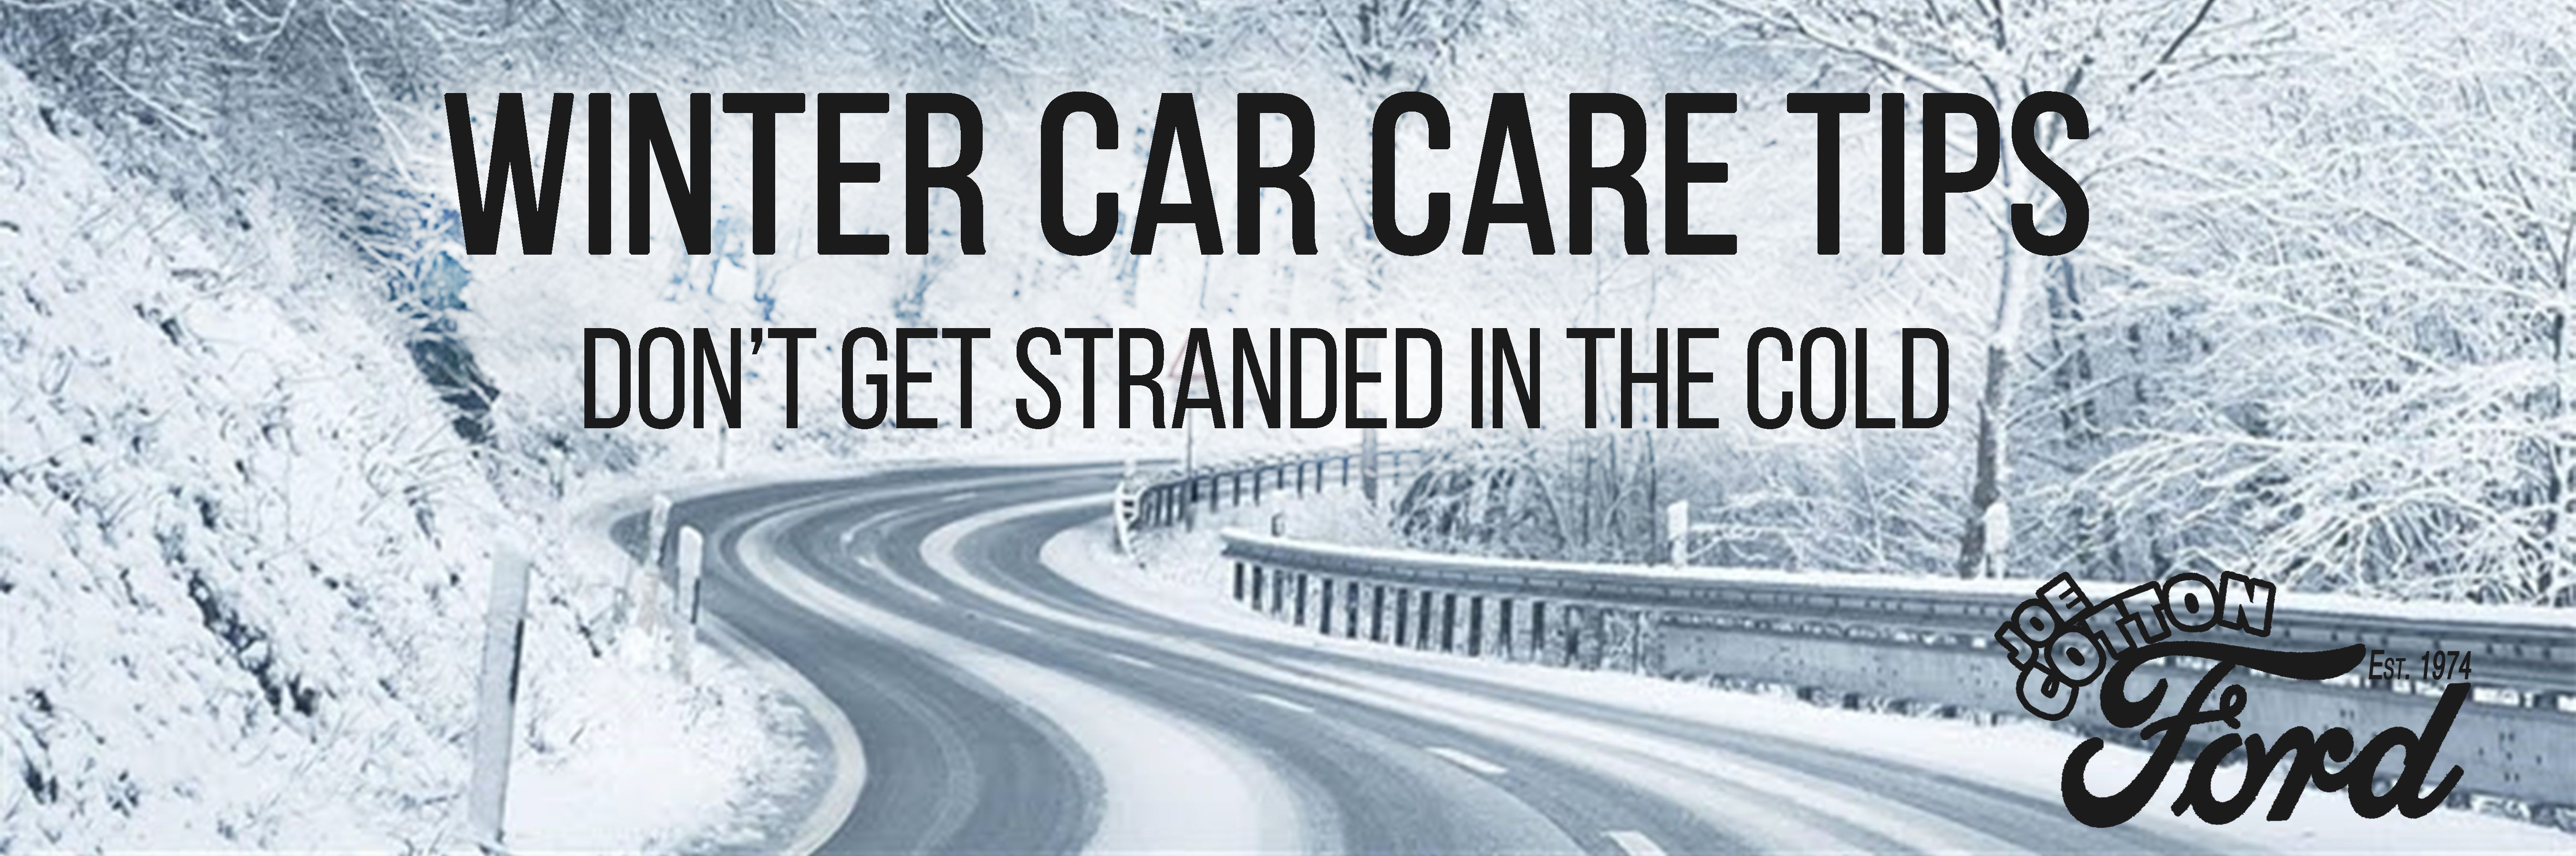 Winter Car Care Tips - Joe Cotton Ford your Local Ford Dealer - Chicagoland 36516b350